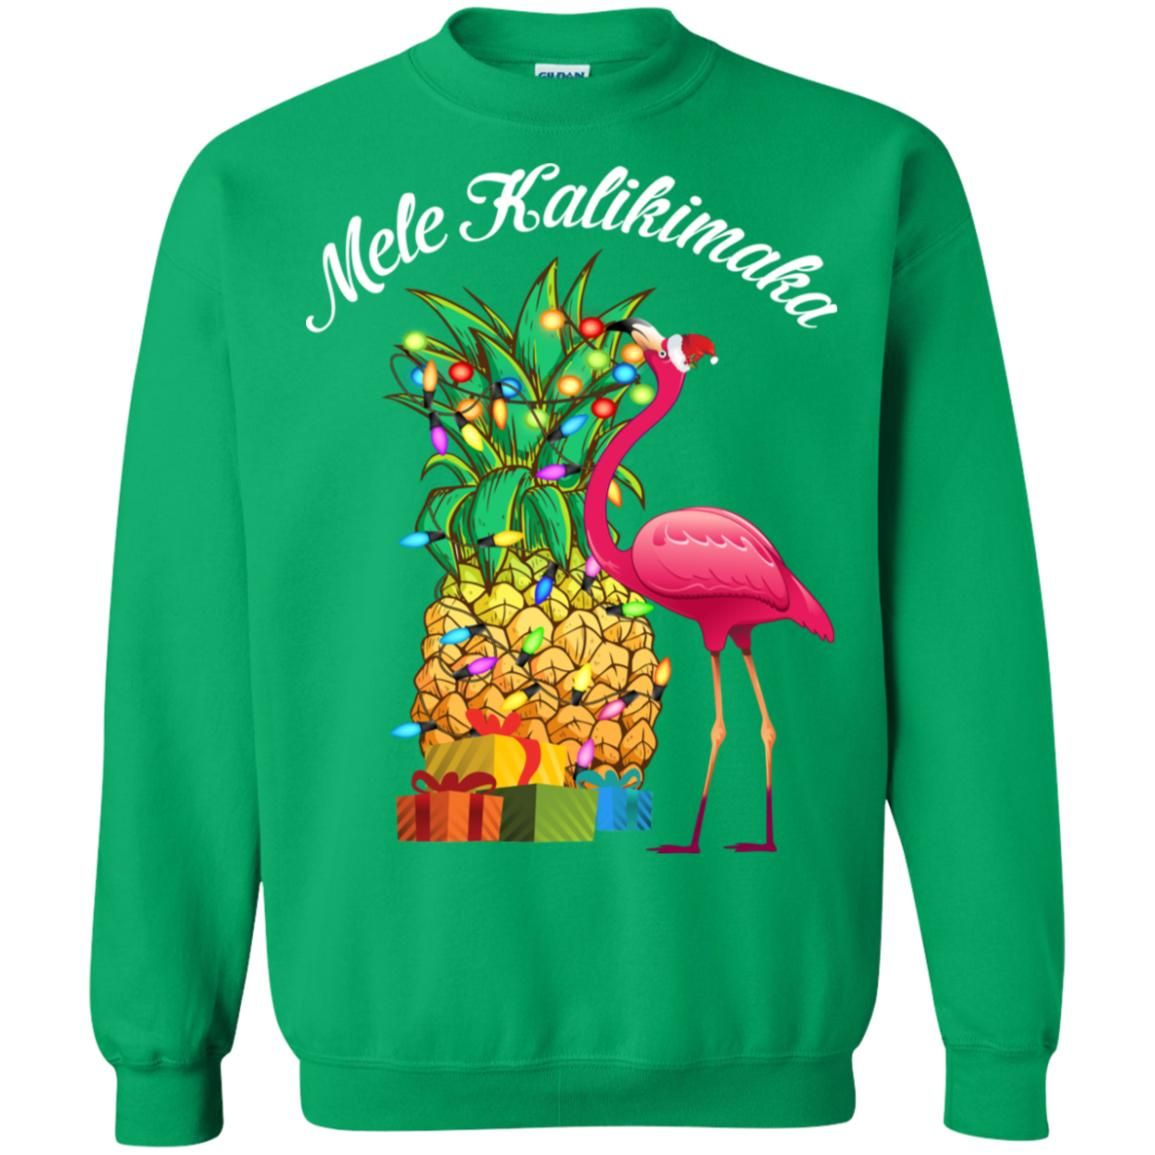 27.95 USD ;  Mele Kalikimaka Pineapple Flamingo Halloween Sweatshirt ;  Mele Kalikimaka Pineapple Flamingo Halloween Sweatshirt #MeleKalikimakaPineappleFlamingoHalloween #MeleKalikimakaPineappleFlamingo #MeleKalikimakaPineapple #MeleKalikimaka #Mele #Mele #Kalikimaka #Pineapple #Flamingo #Halloween #Sweatshirt #Sweater